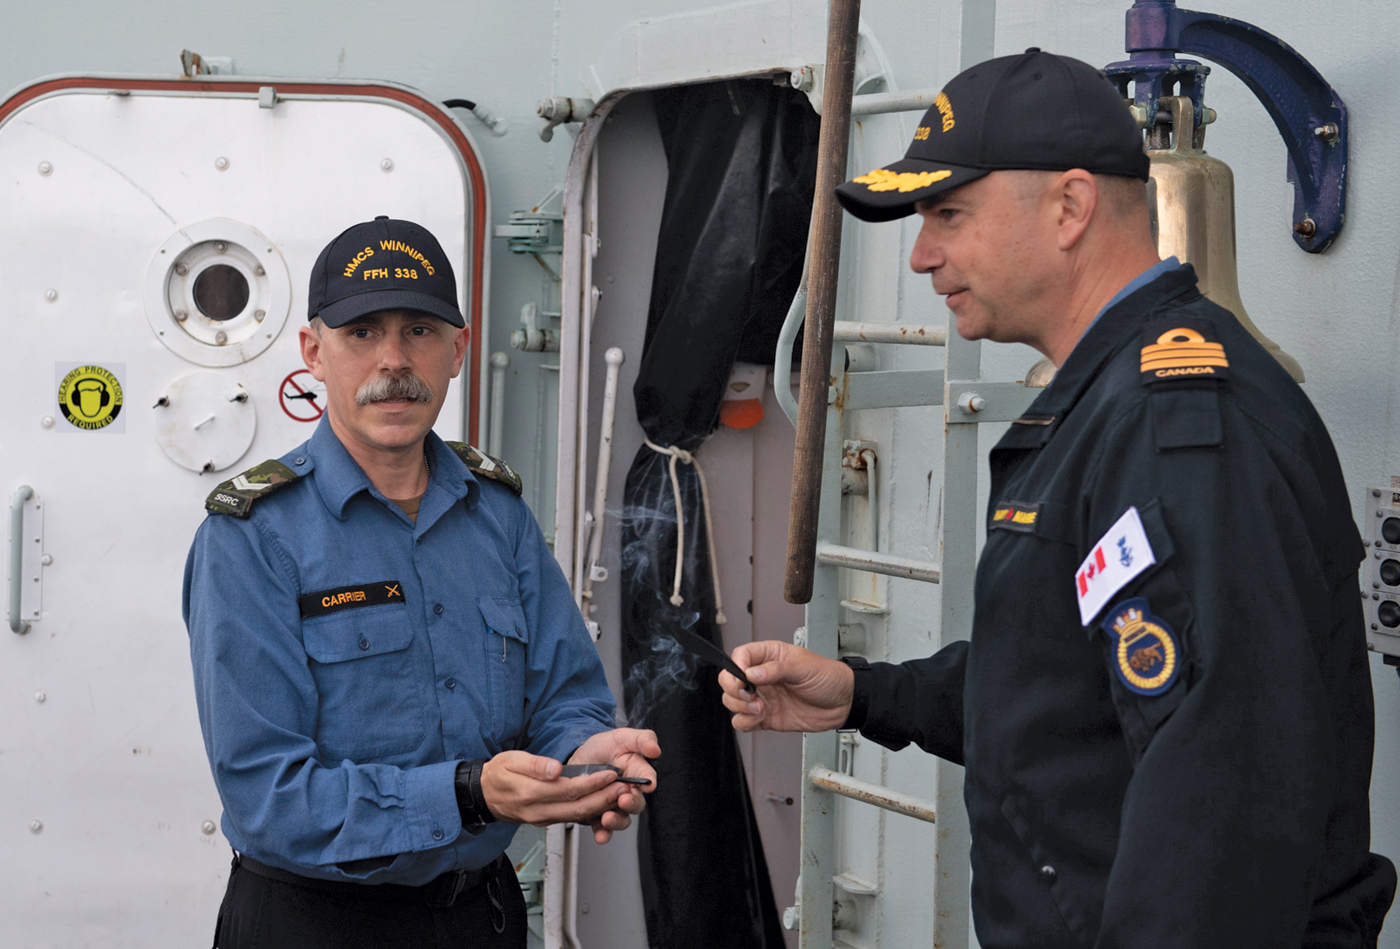 Cdr Doug Layton, Winnipeg's Commanding Officer, took part in a smudging ceremony performed by Cpl Terrance Carrier (left).